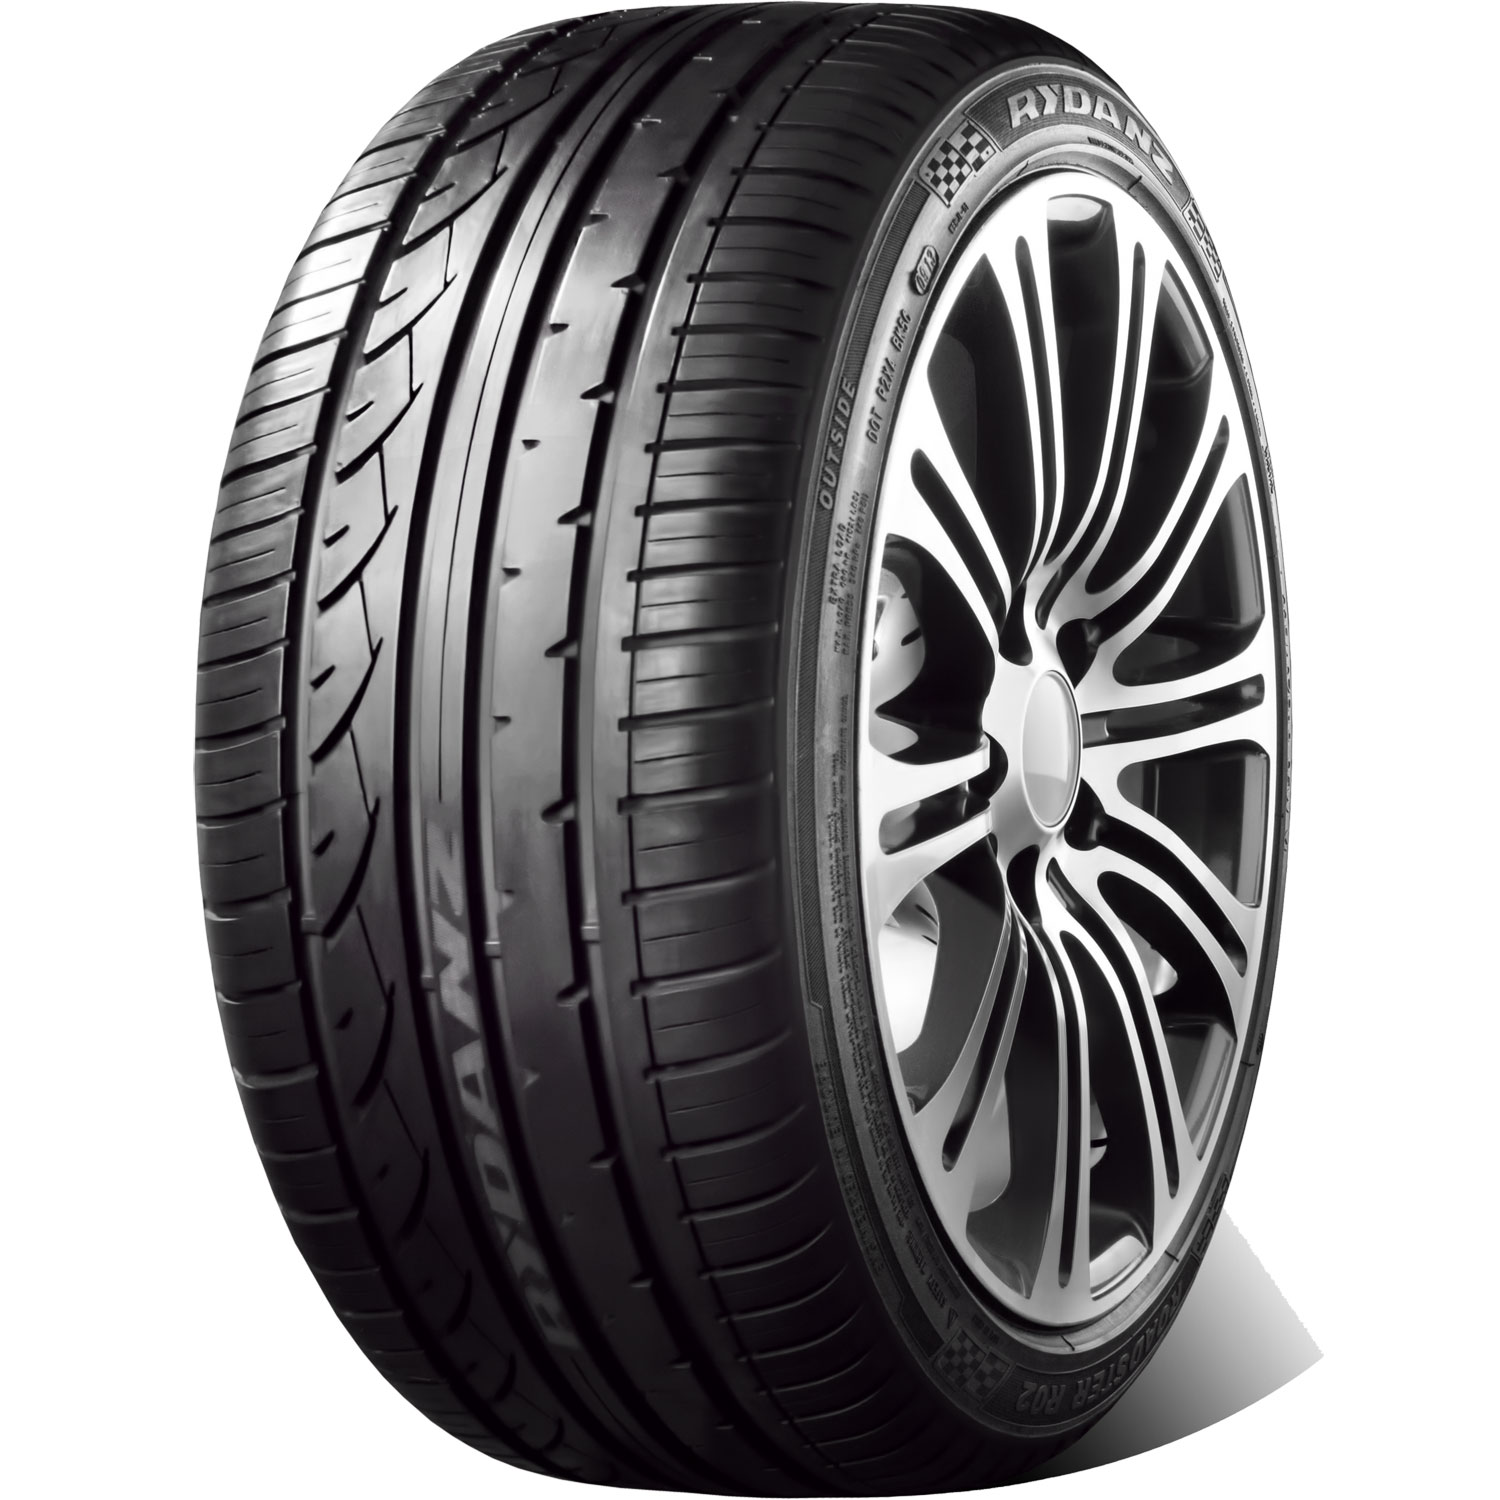 Rydanz Tires Roadster R02 Passenger All Season Tire